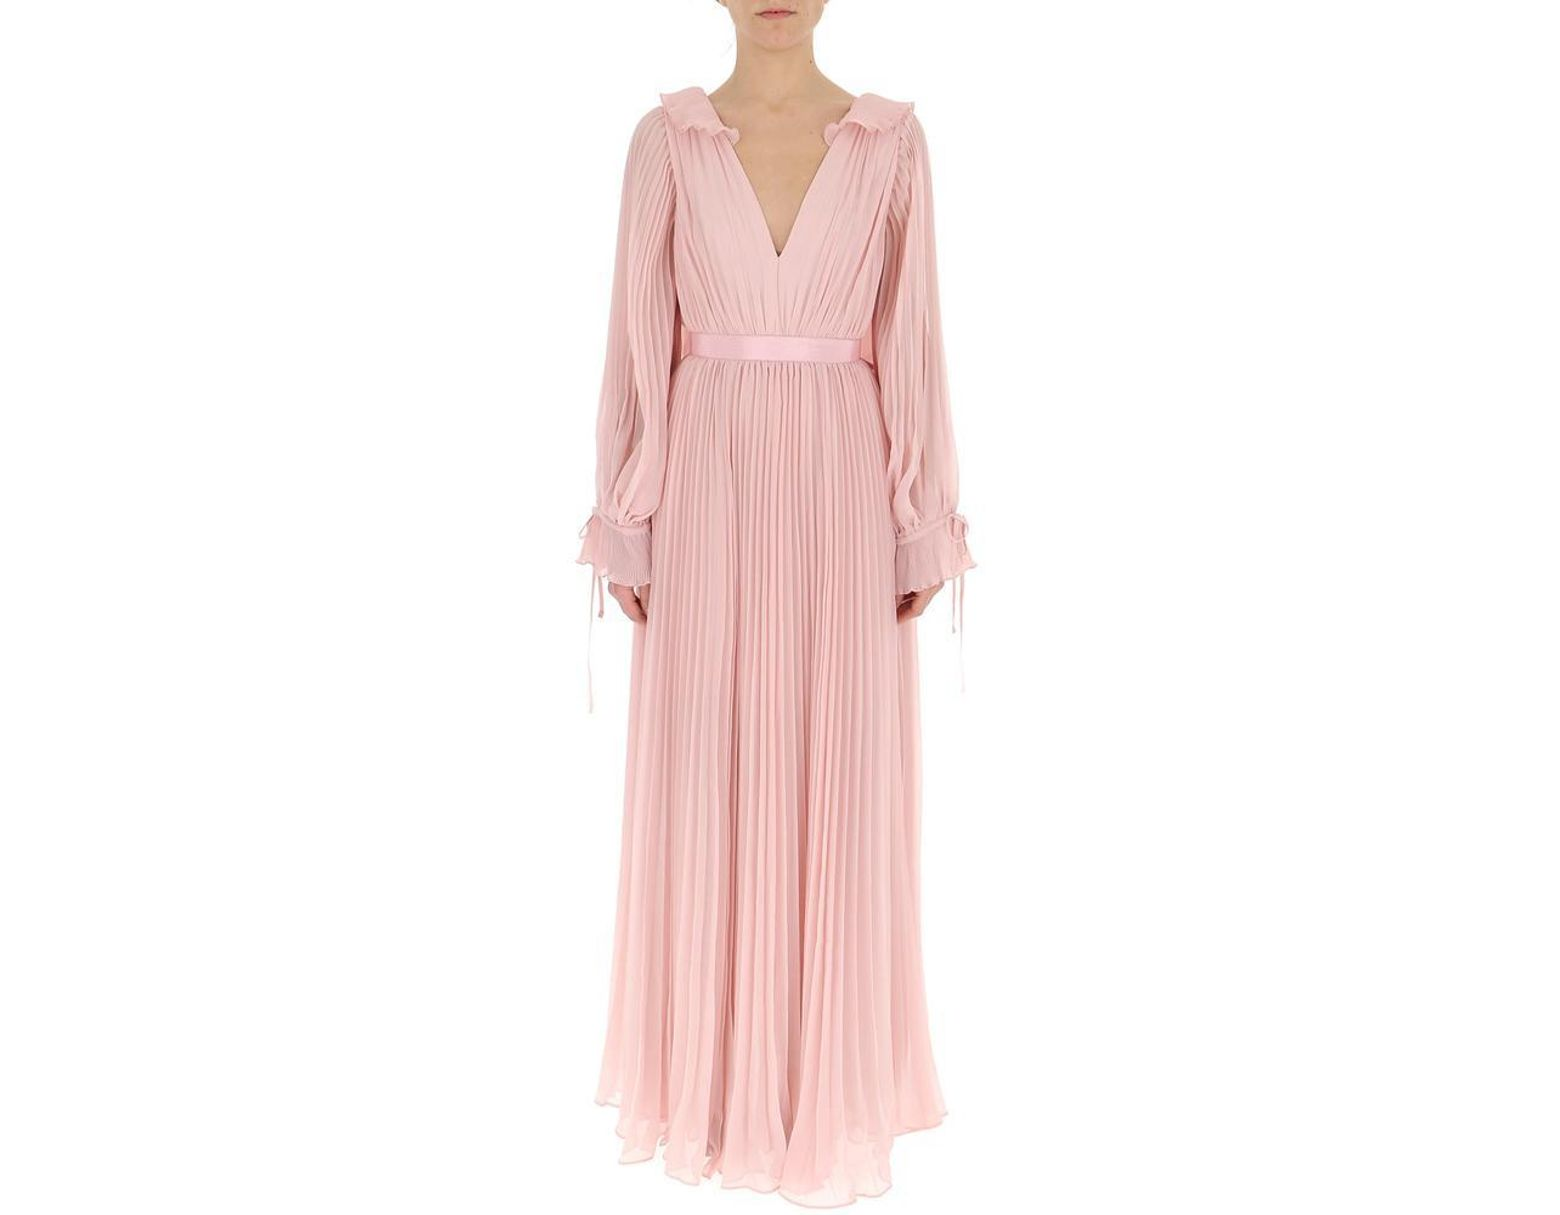 641733e49ae4 Self-Portrait Pleated Billow-sleeve Gown in Pink - Lyst